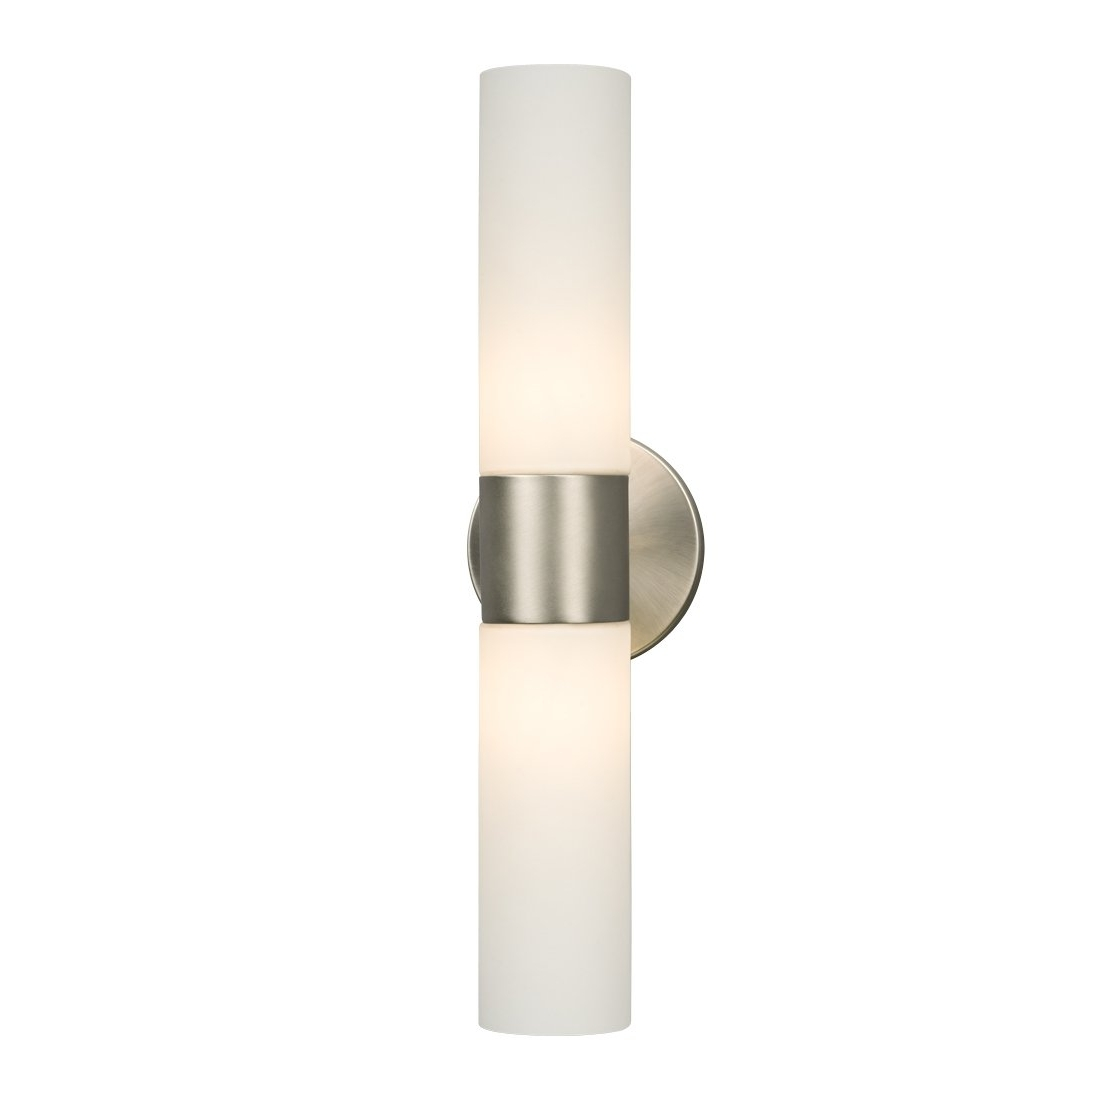 Lowe's Canada Pertaining To 2018 Rona Outdoor Wall Lighting (View 4 of 20)